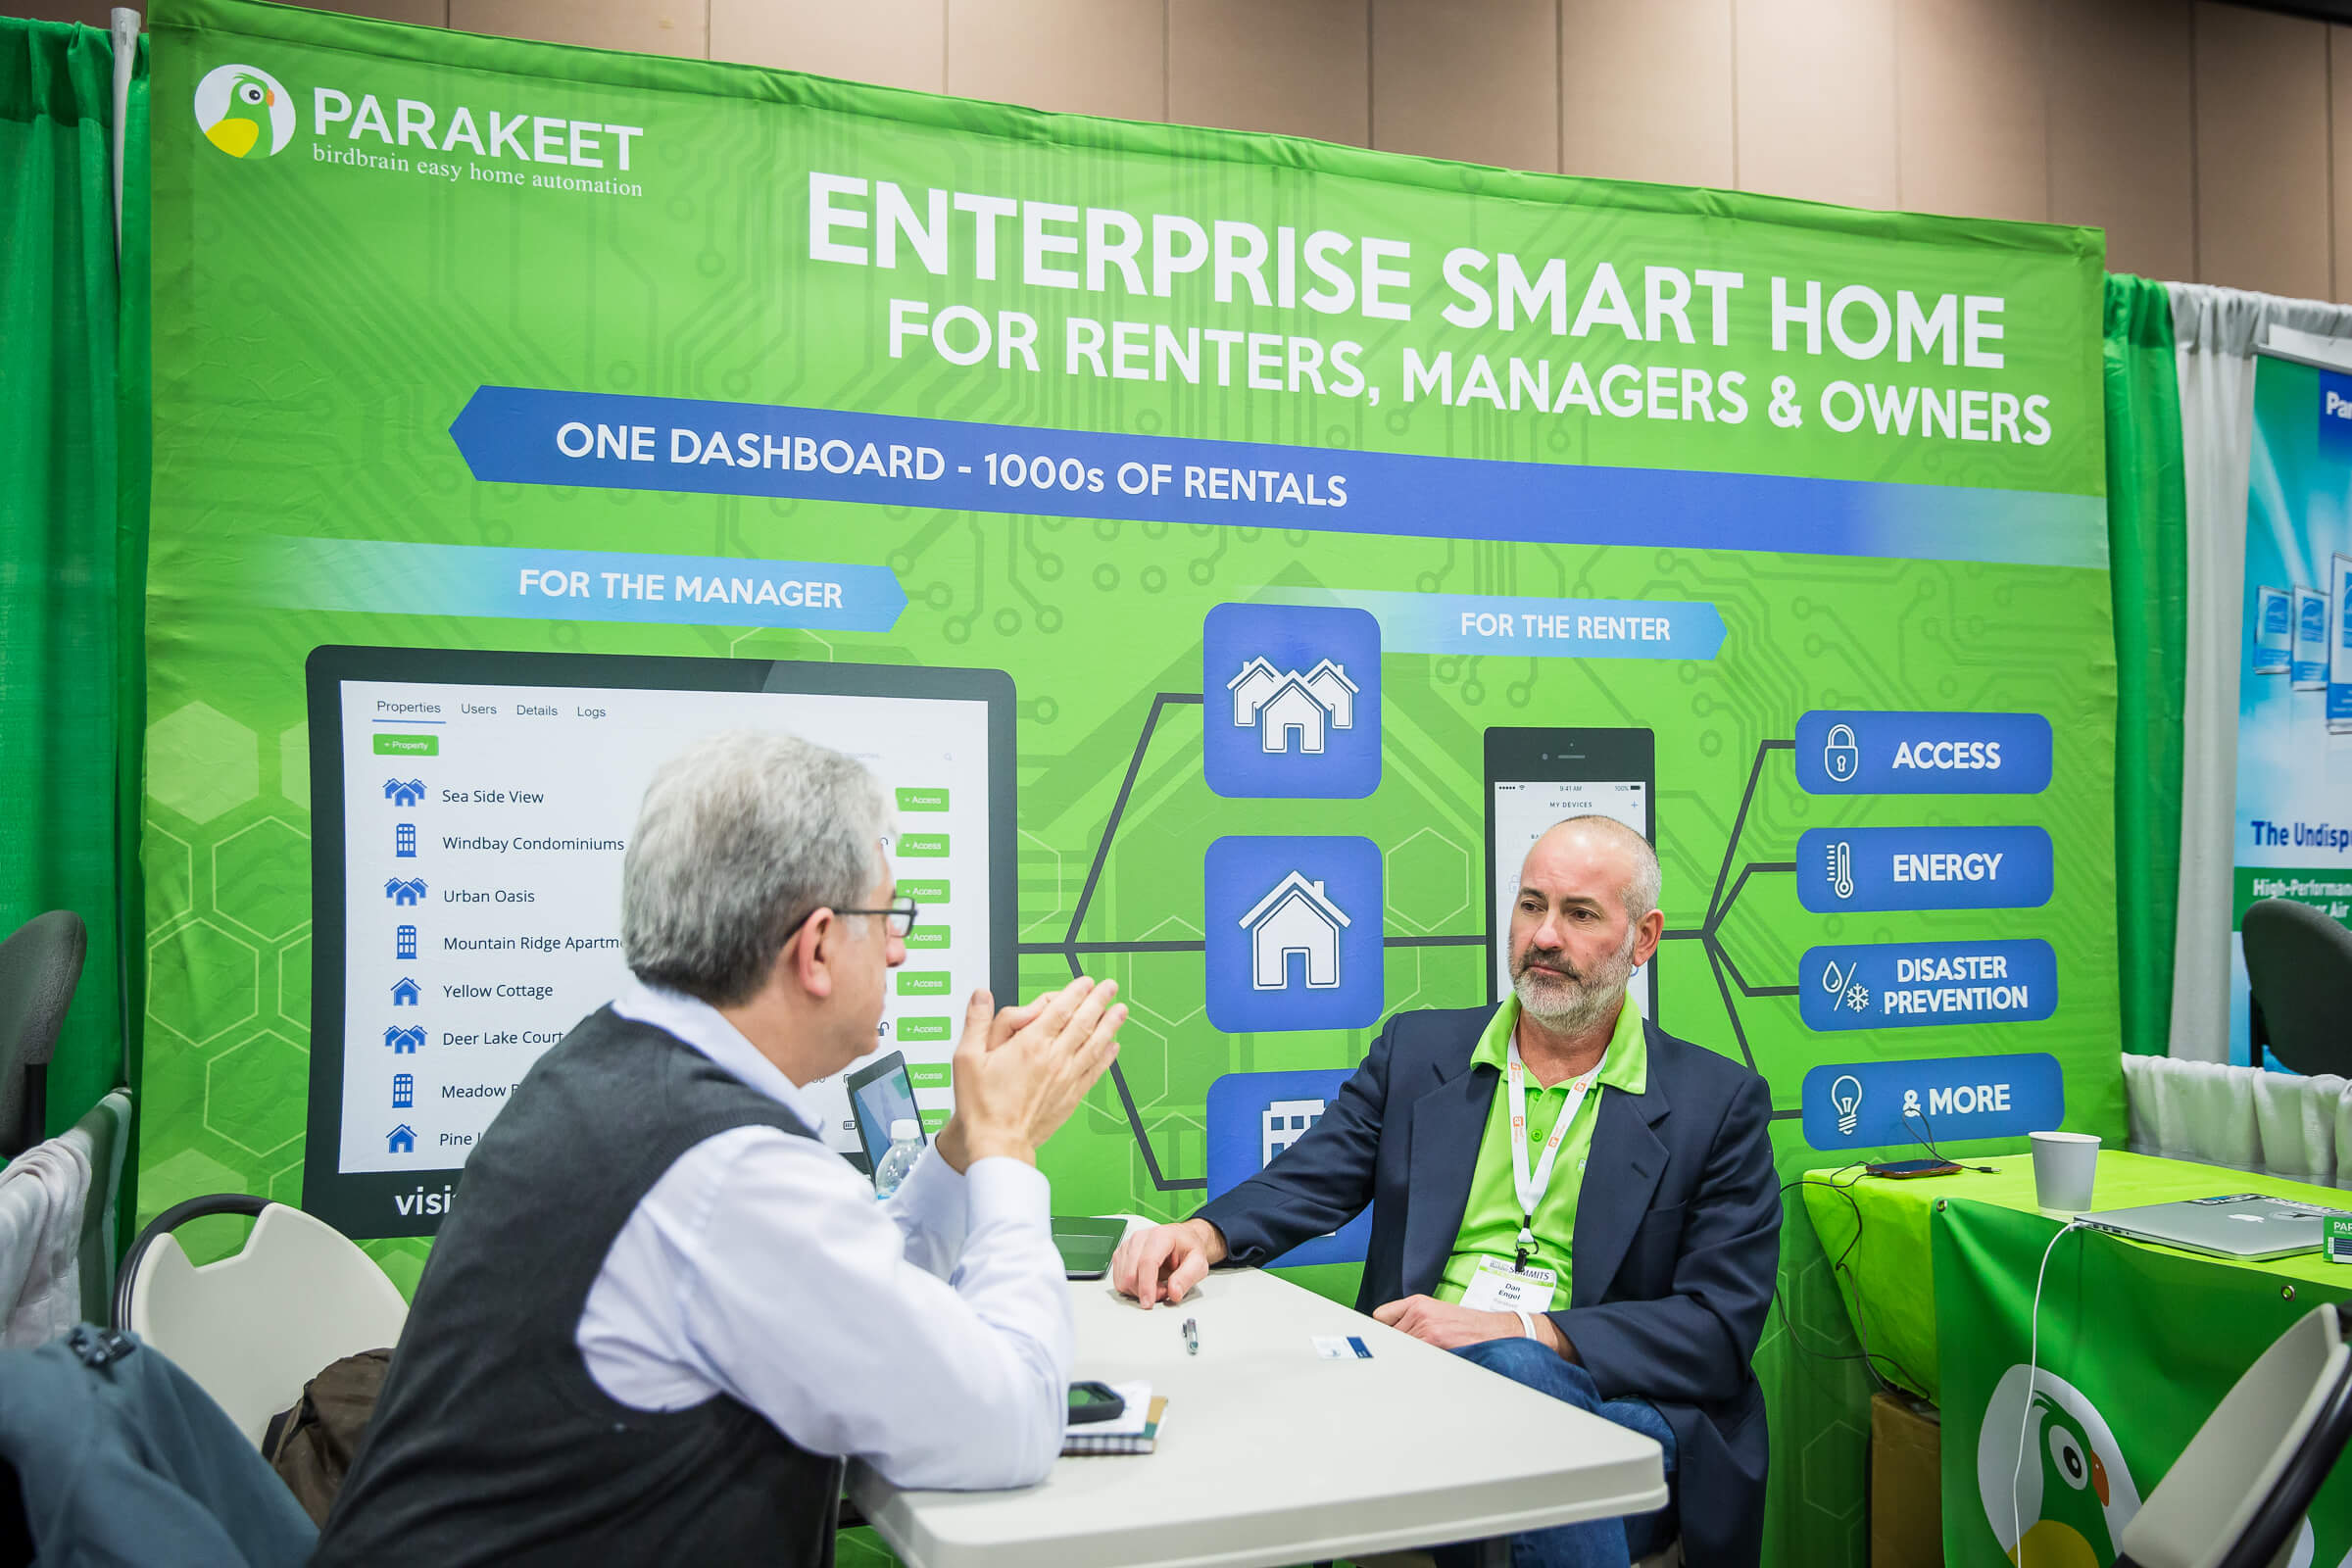 After meeting with Parakeet representatives at the TecHome Builder Summit, Kromer will feature the smart home system in select apartments.